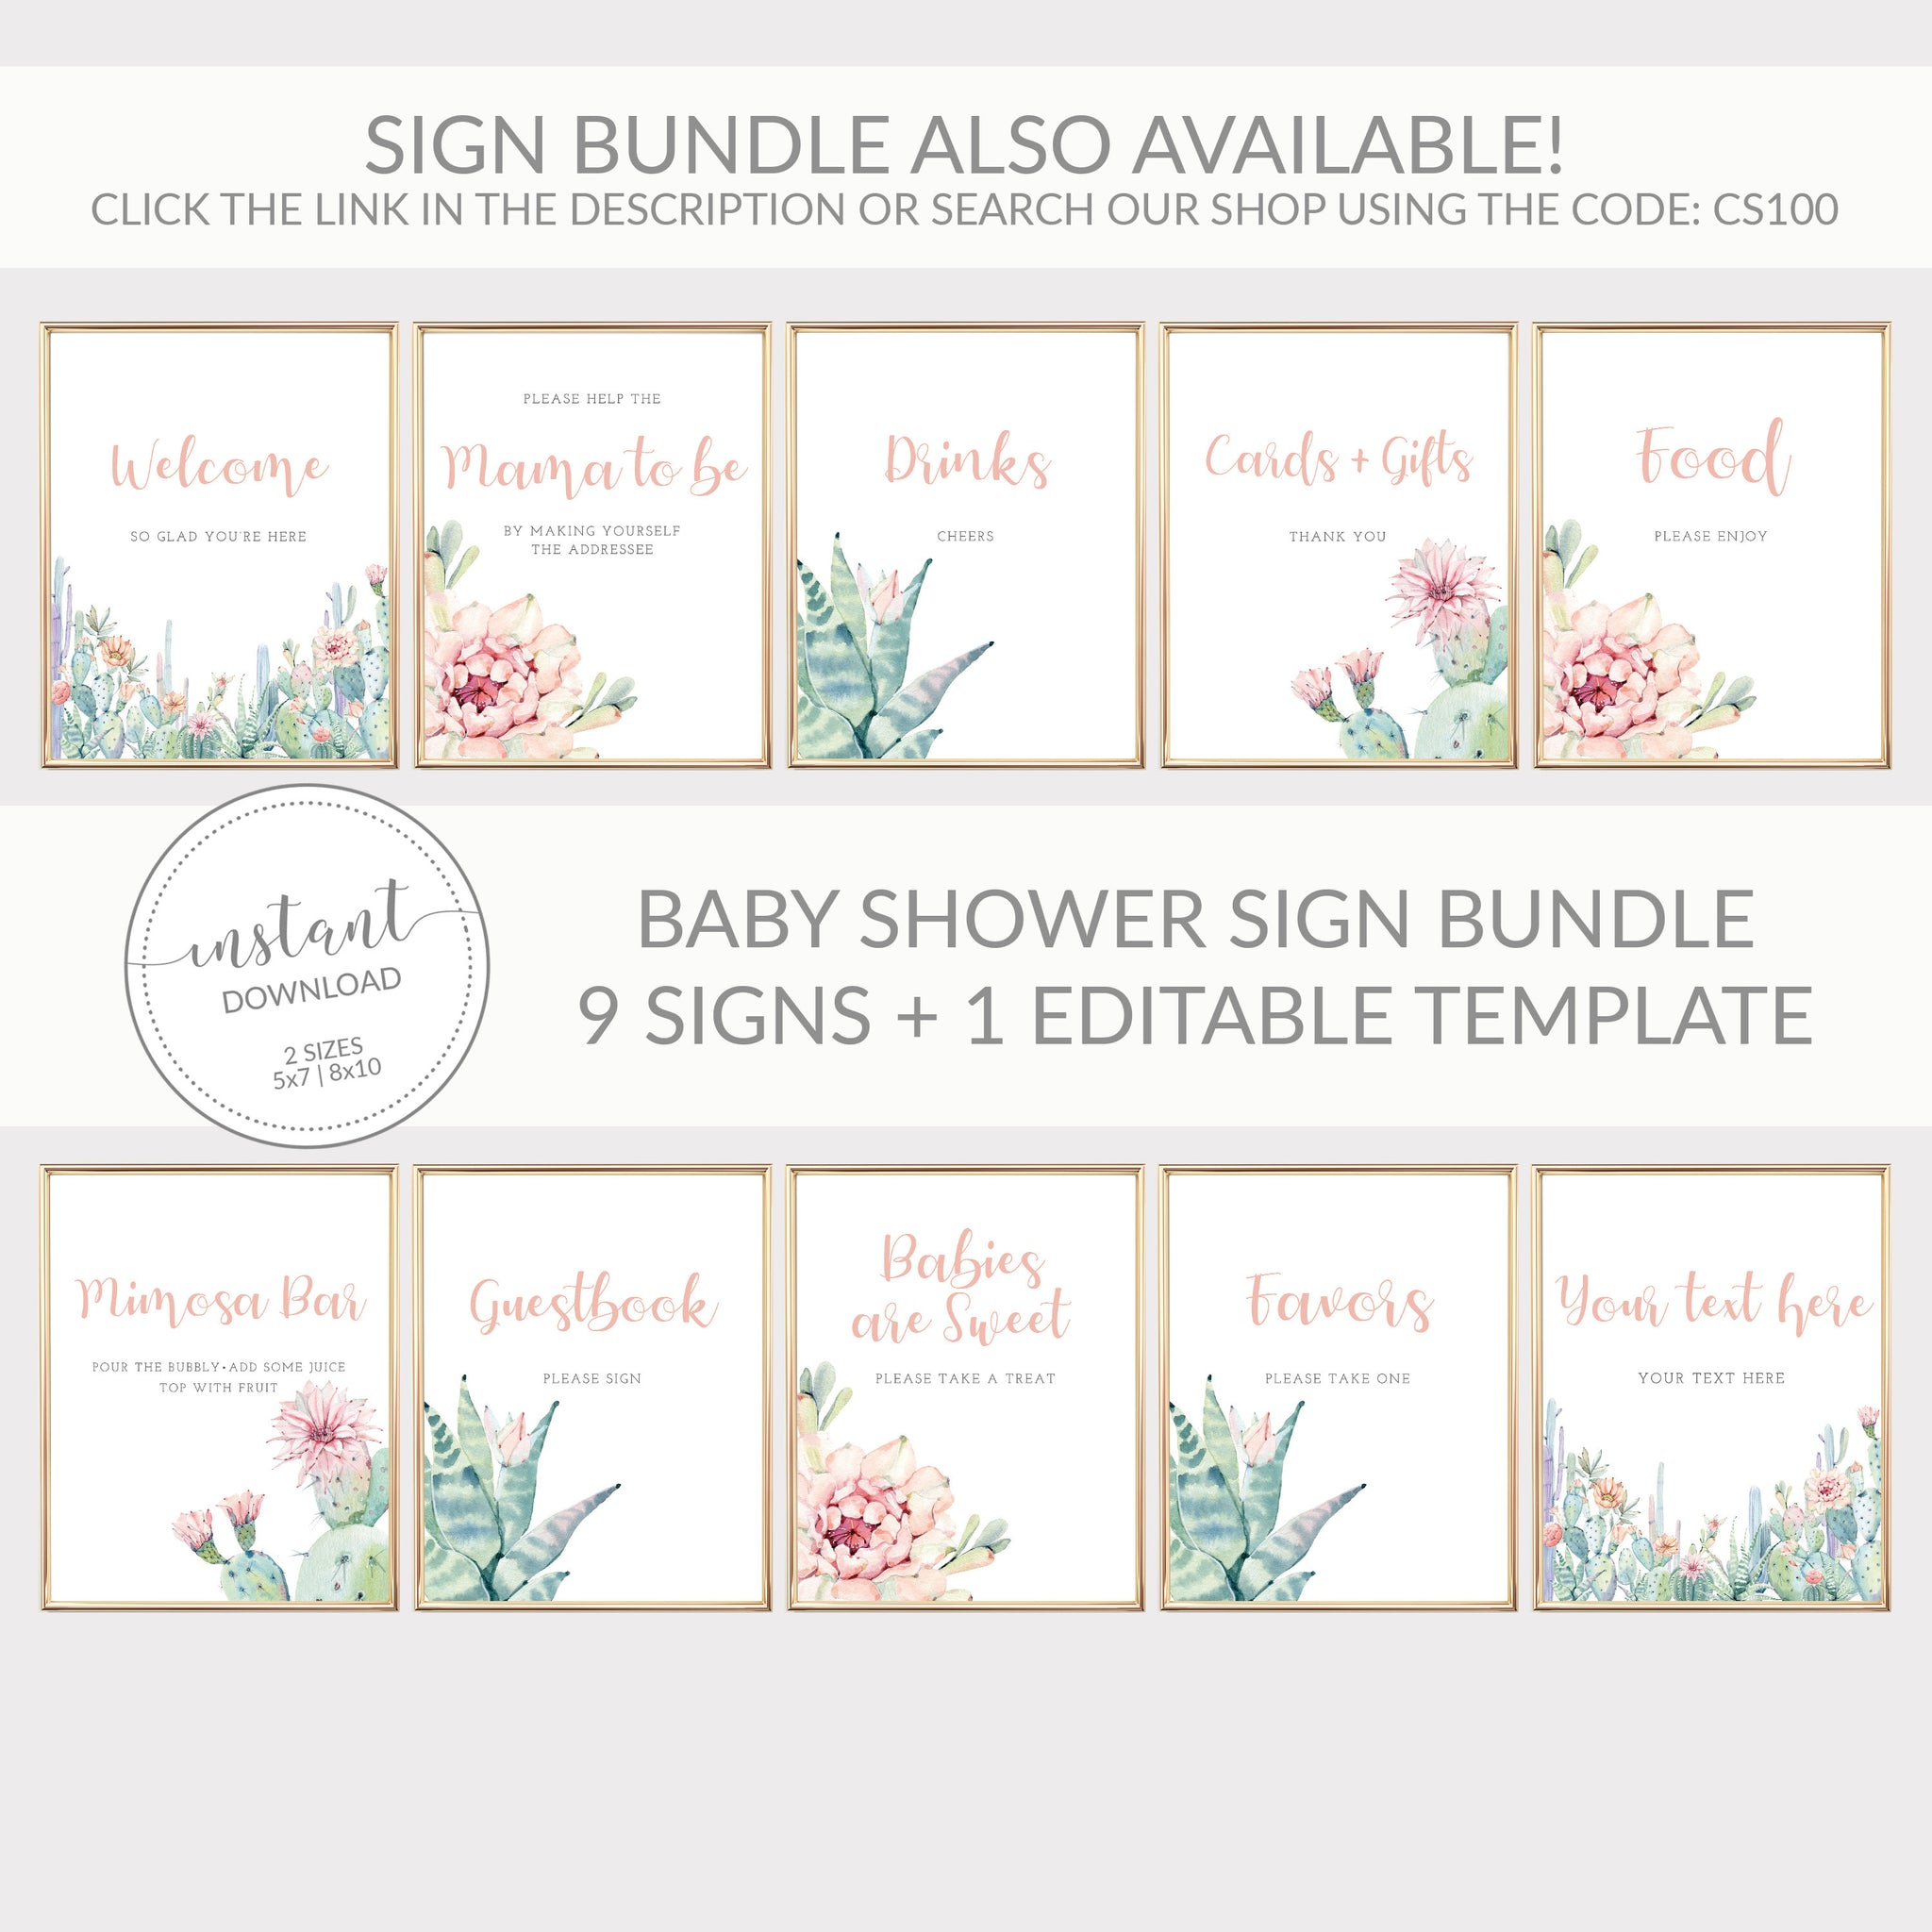 Succulent Baby Shower Invitation, Boy Baby Shower Invitation Template, Editable DIGITAL DOWNLOAD - CS100 - @PlumPolkaDot